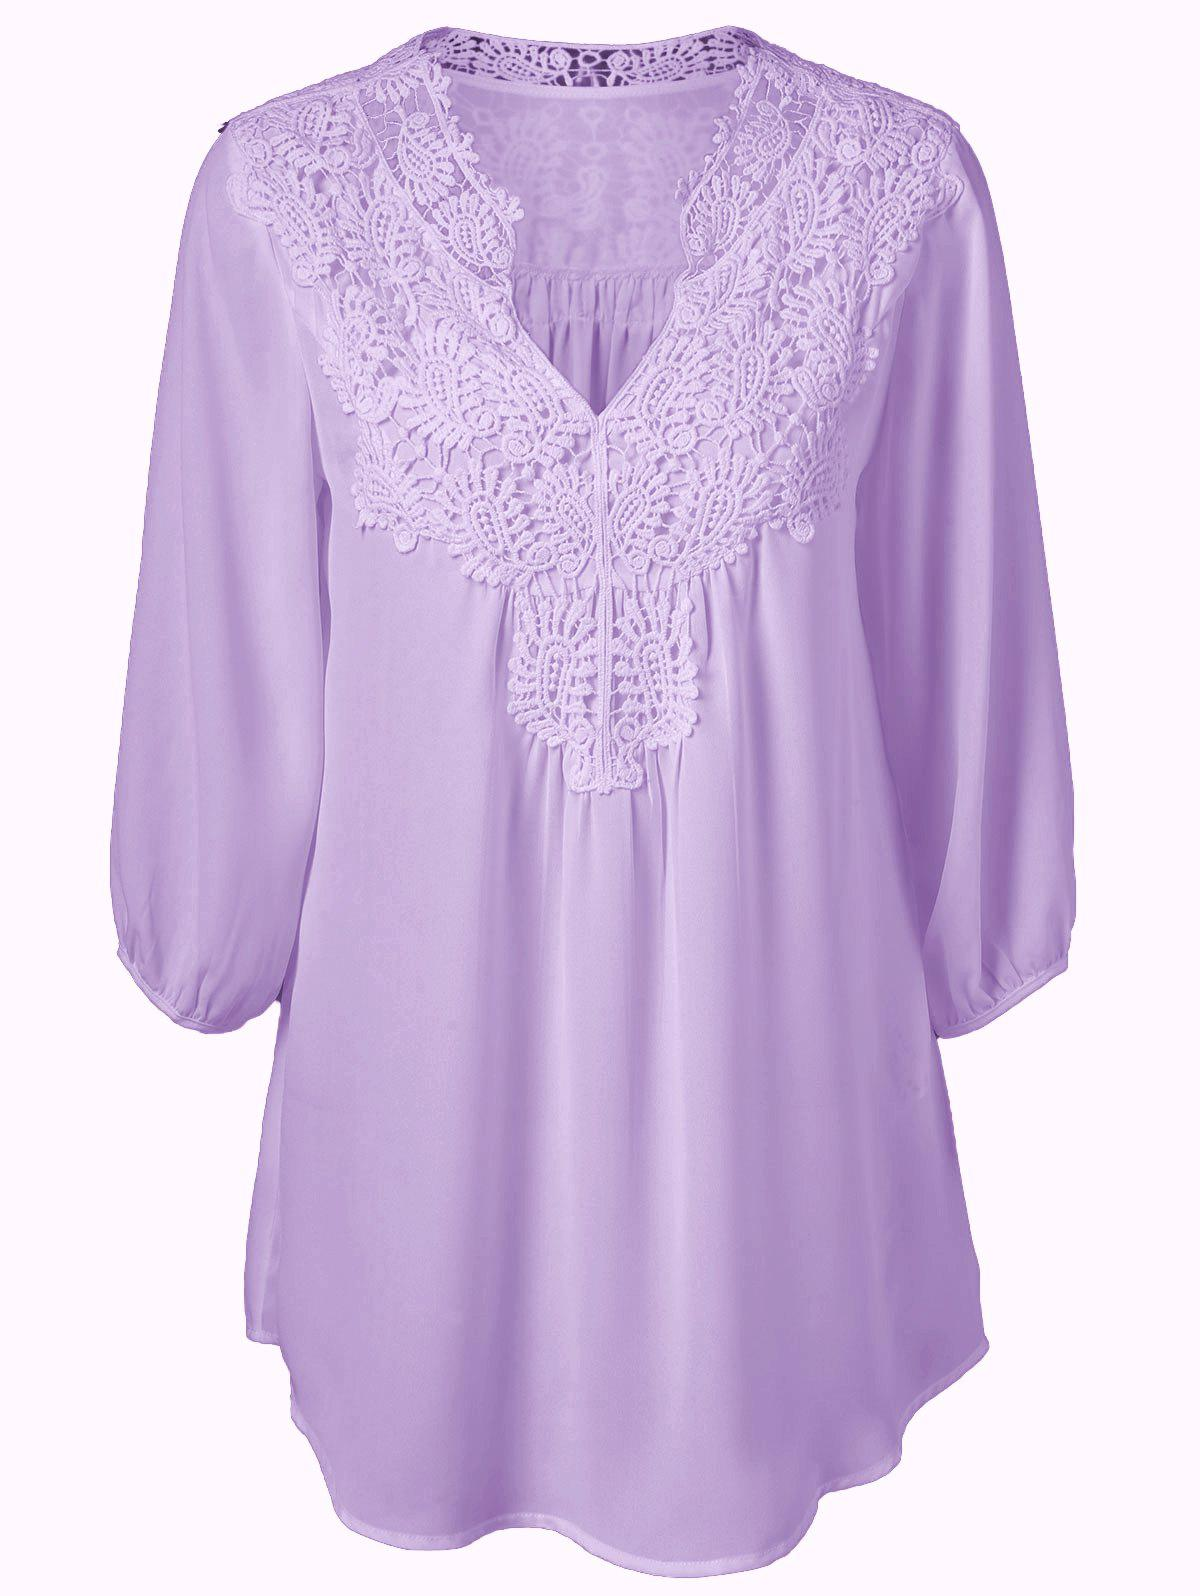 Plus Size Sweet Crochet Spliced Tunic BlouseWOMEN<br><br>Size: XL; Color: PURPLE; Material: Polyester; Shirt Length: Long; Sleeve Length: Three Quarter; Collar: V-Neck; Style: Casual; Season: Summer; Pattern Type: Patchwork; Weight: 0.2310kg; Package Contents: 1 x Blouse;